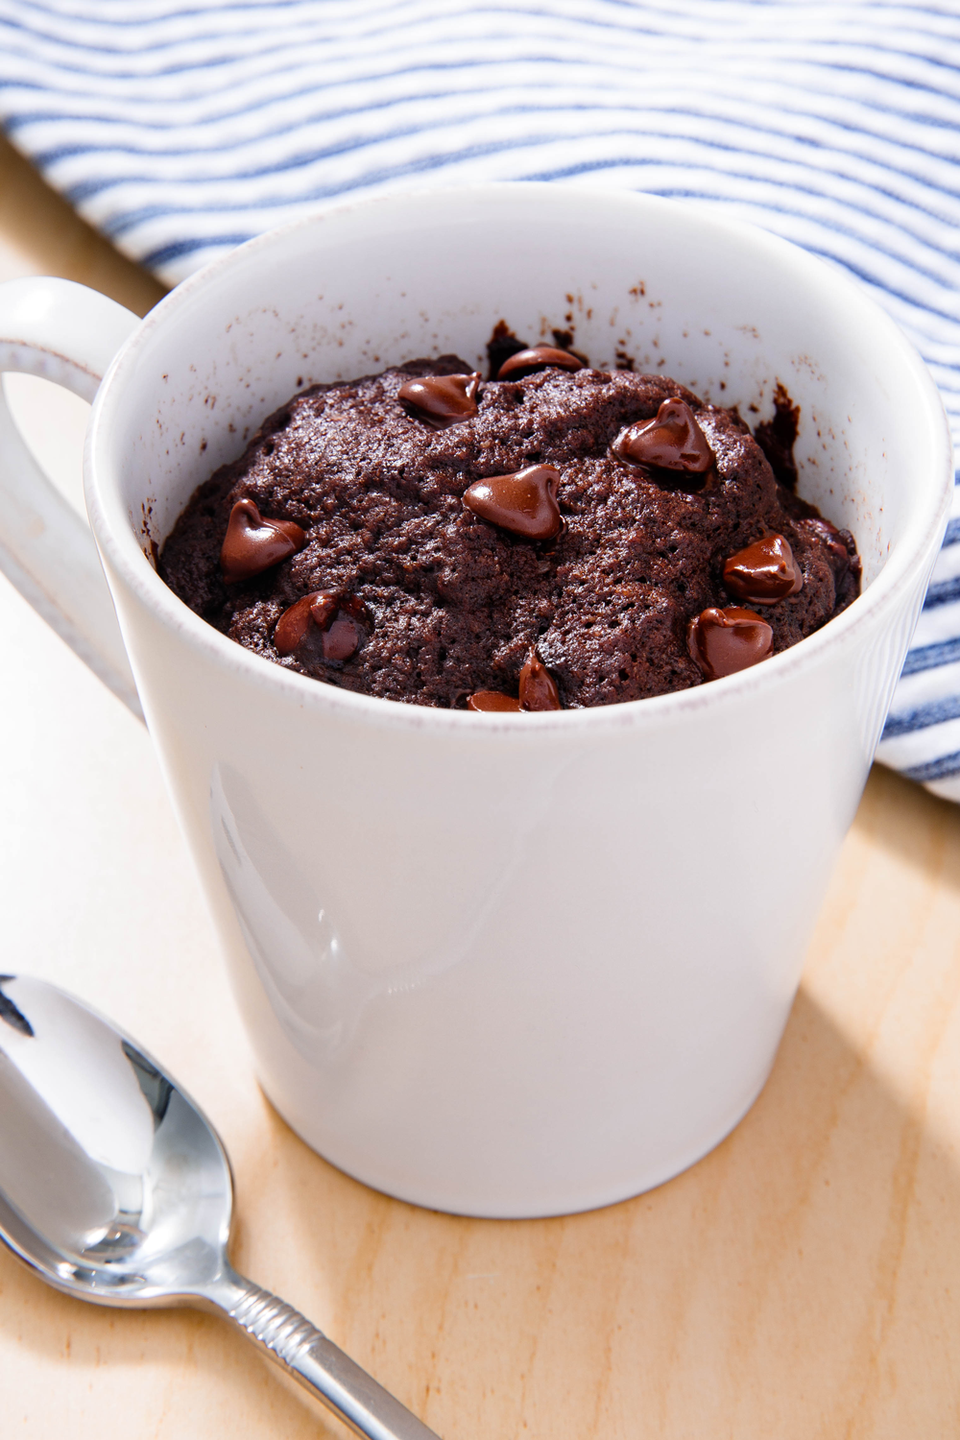 """<p>Need an easy, last-minute option? This mug cake recipe will save you.</p><p>Get the recipe from <a href=""""https://www.delish.com/cooking/recipe-ideas/a23104428/keto-chocolate-mug-cake-recipe/"""" rel=""""nofollow noopener"""" target=""""_blank"""" data-ylk=""""slk:Delish"""" class=""""link rapid-noclick-resp"""">Delish</a>. </p>"""